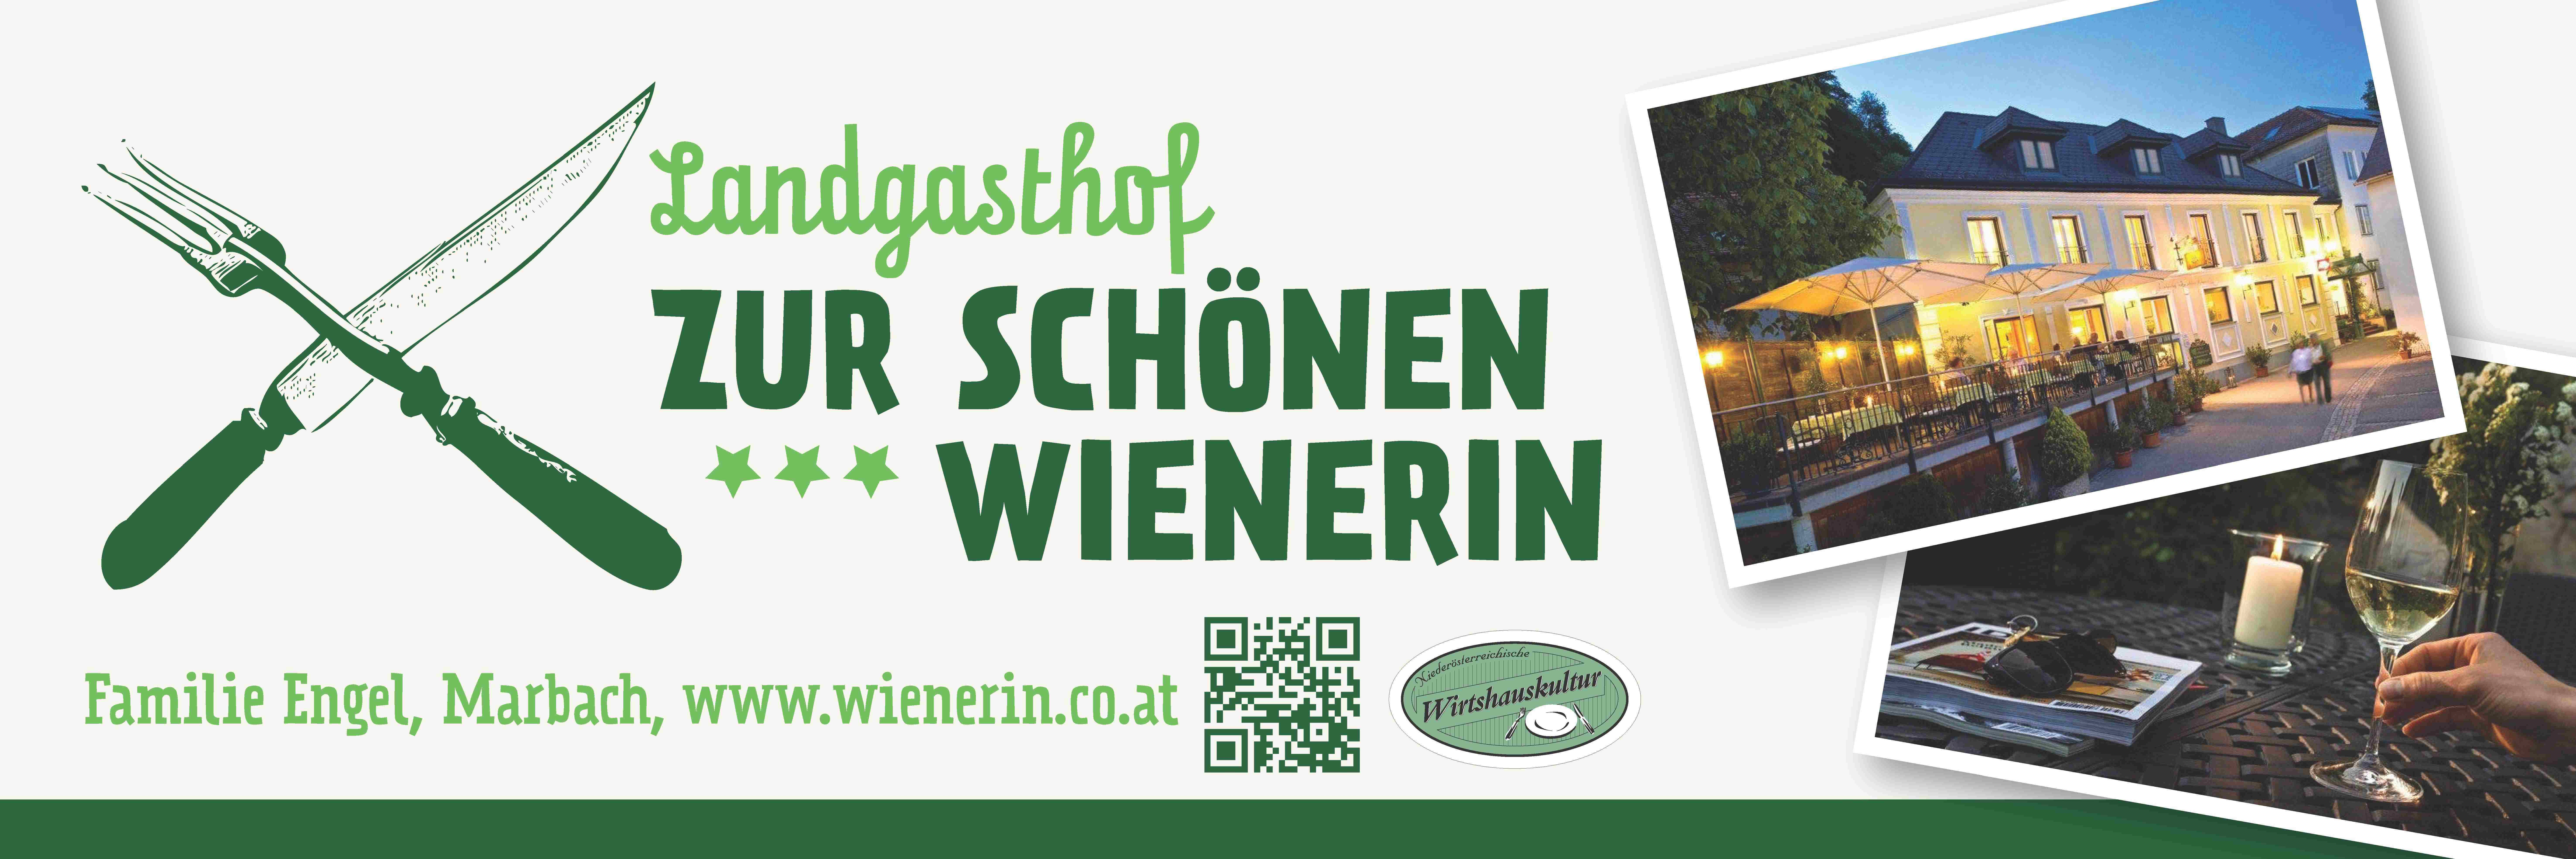 wienerin transparent